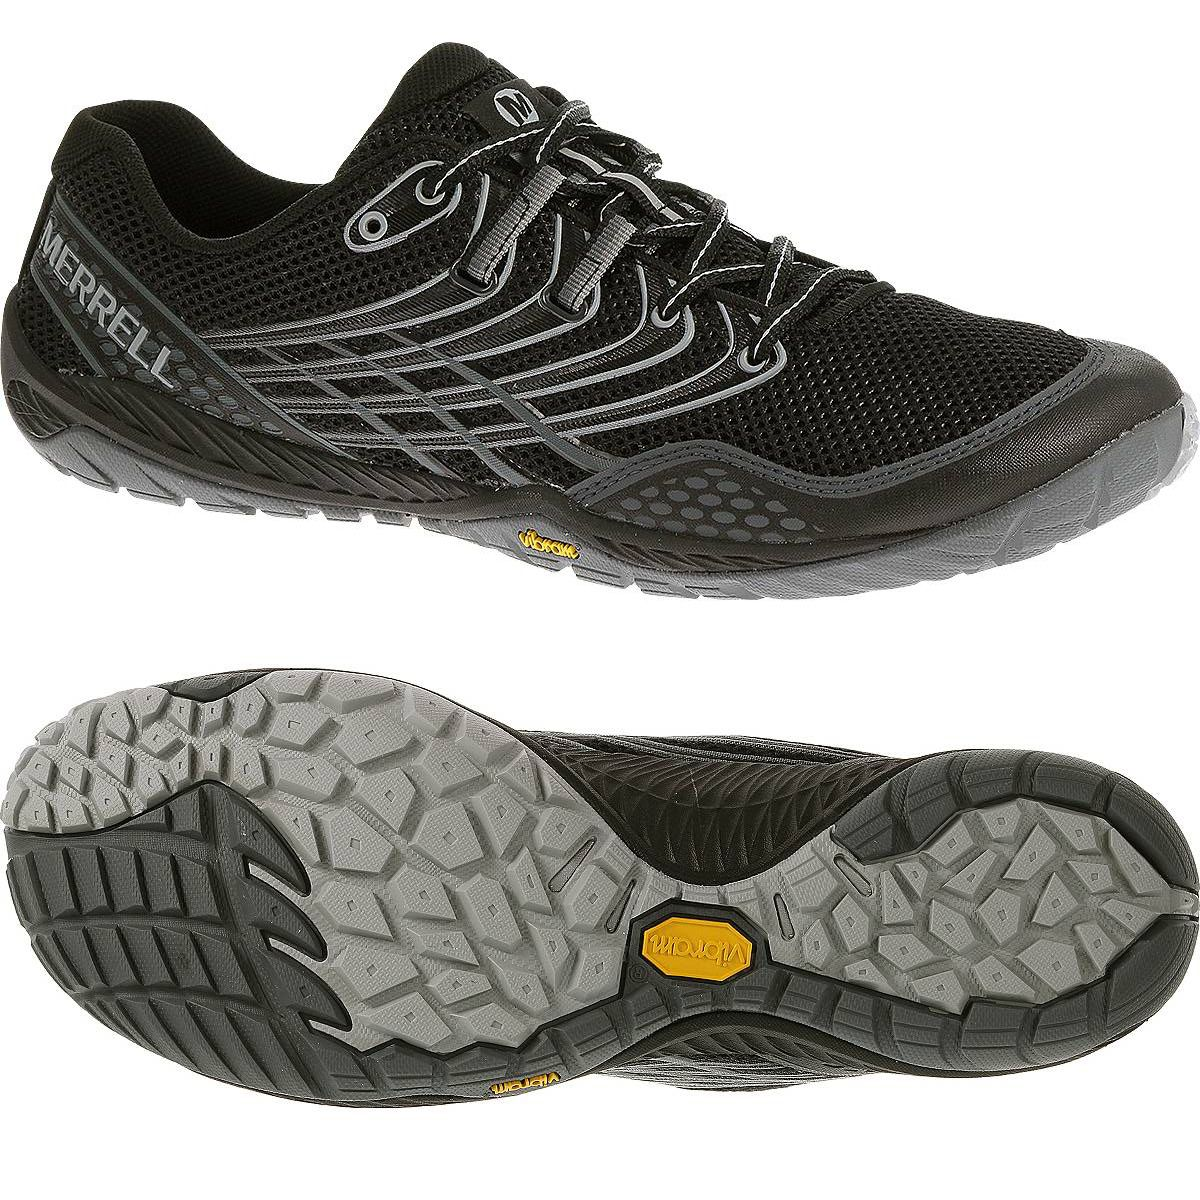 Mens Off Road Running Shoes